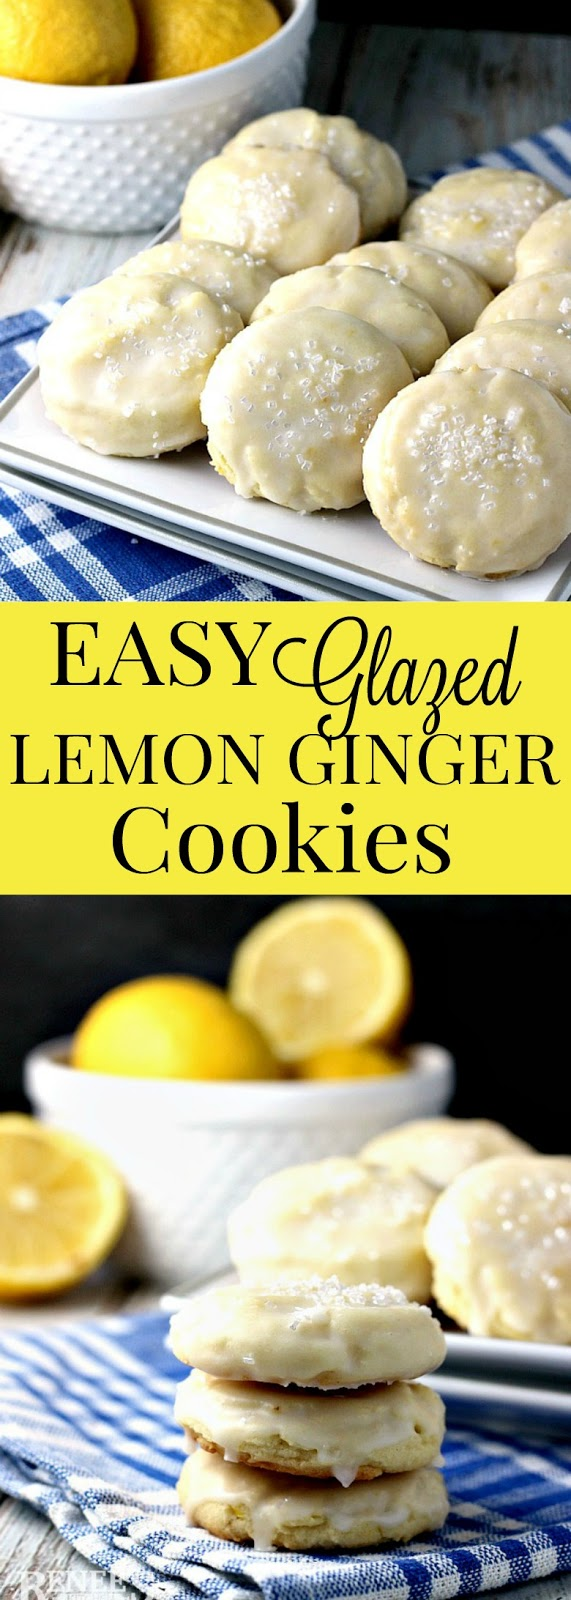 Easy Glazed Lemon Ginger Cookies | Renee's Kitchen Adventures - easy dessert cookie recipe for lemony drop cookies studded with candied ginger and glazed with a lemon icing